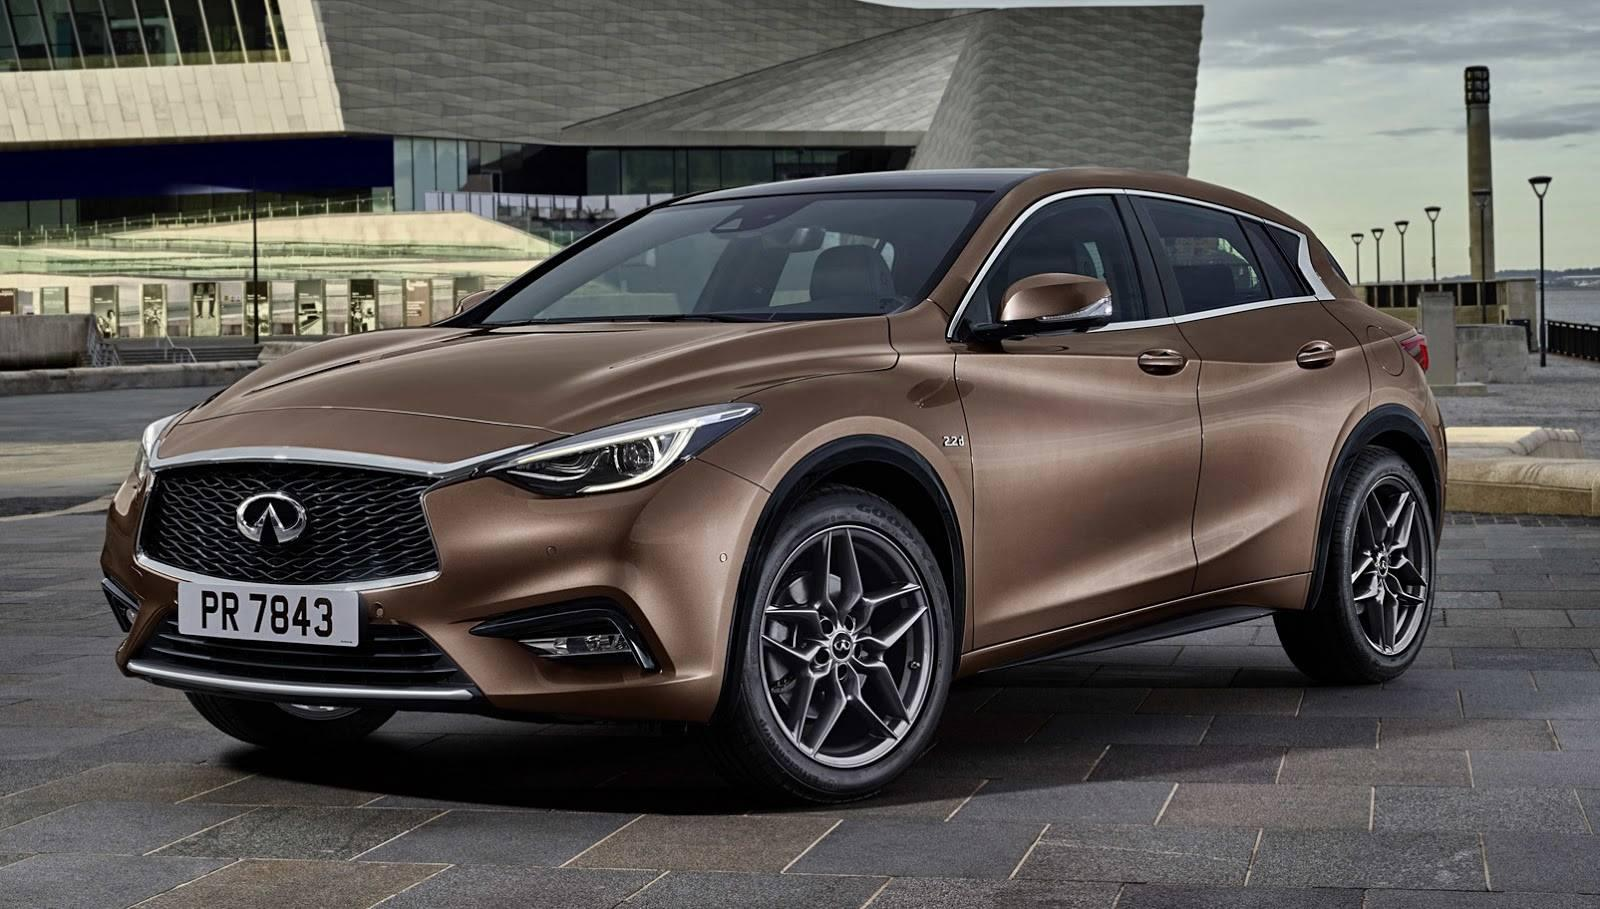 infiniti previews the mercedes based q30 compact ahead of its frankfurt debut. Black Bedroom Furniture Sets. Home Design Ideas